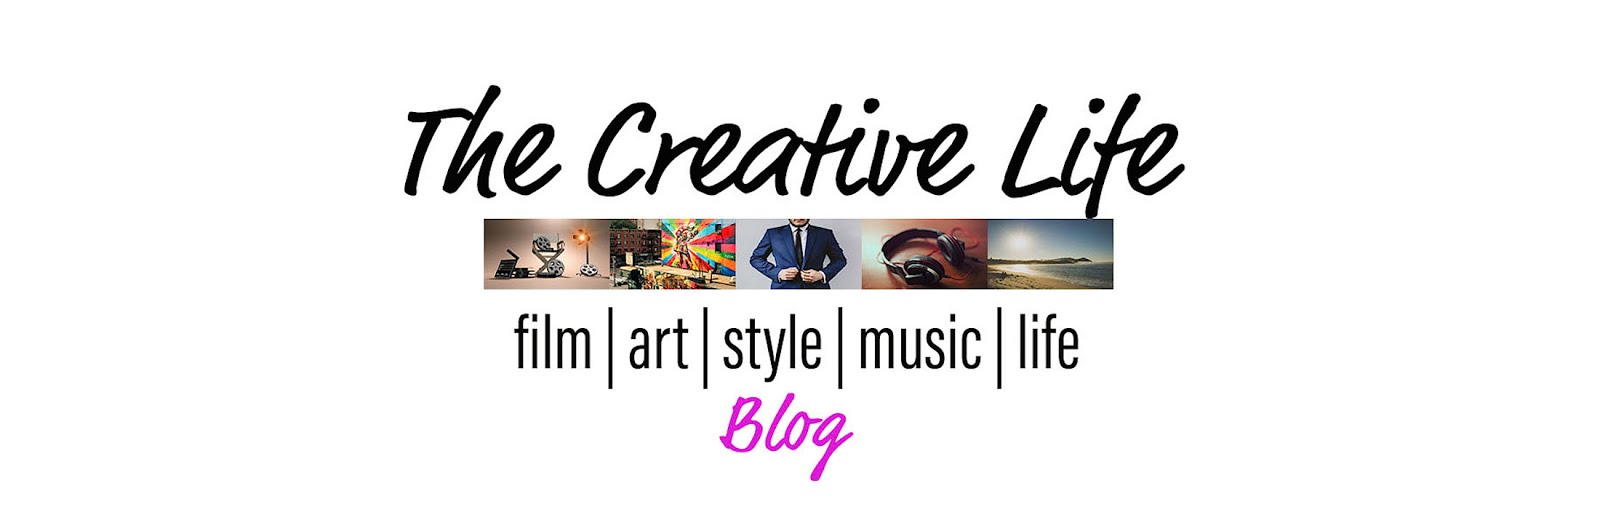 TheCreativeLife | blog. UNDER CONSTRUCTION - COMING SOON 2016